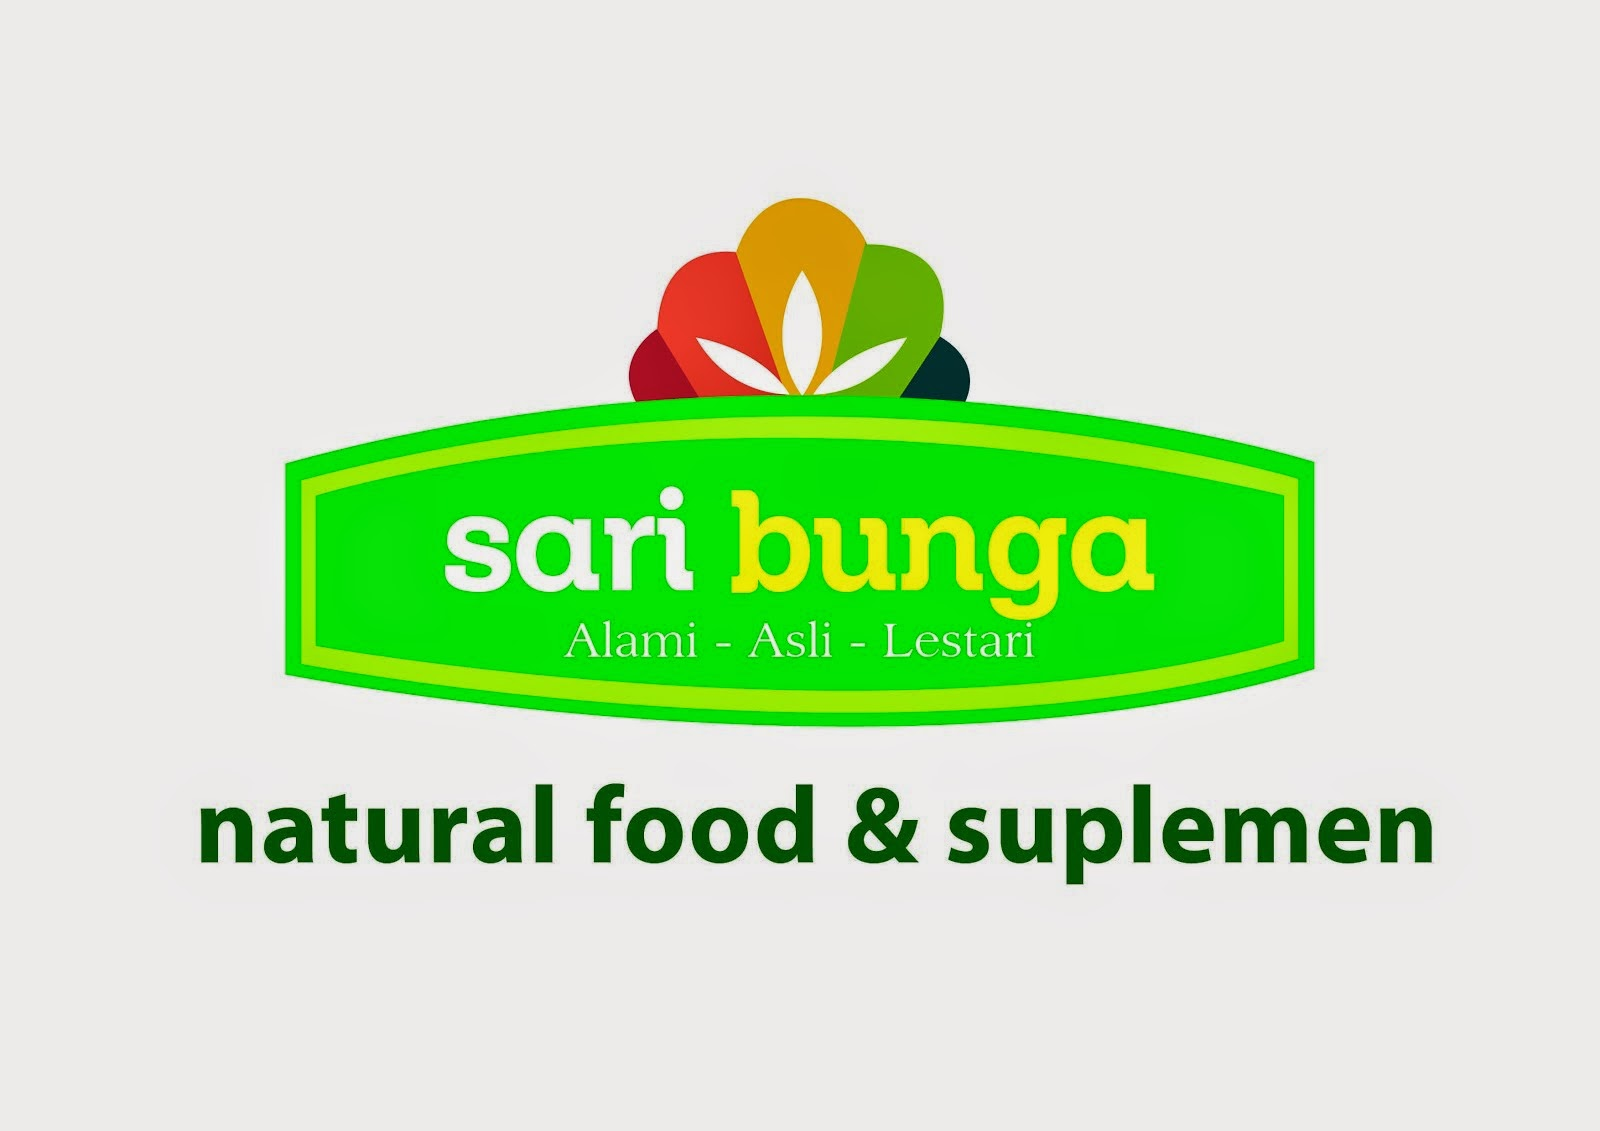 Herbal Saribunga Alam Lestari